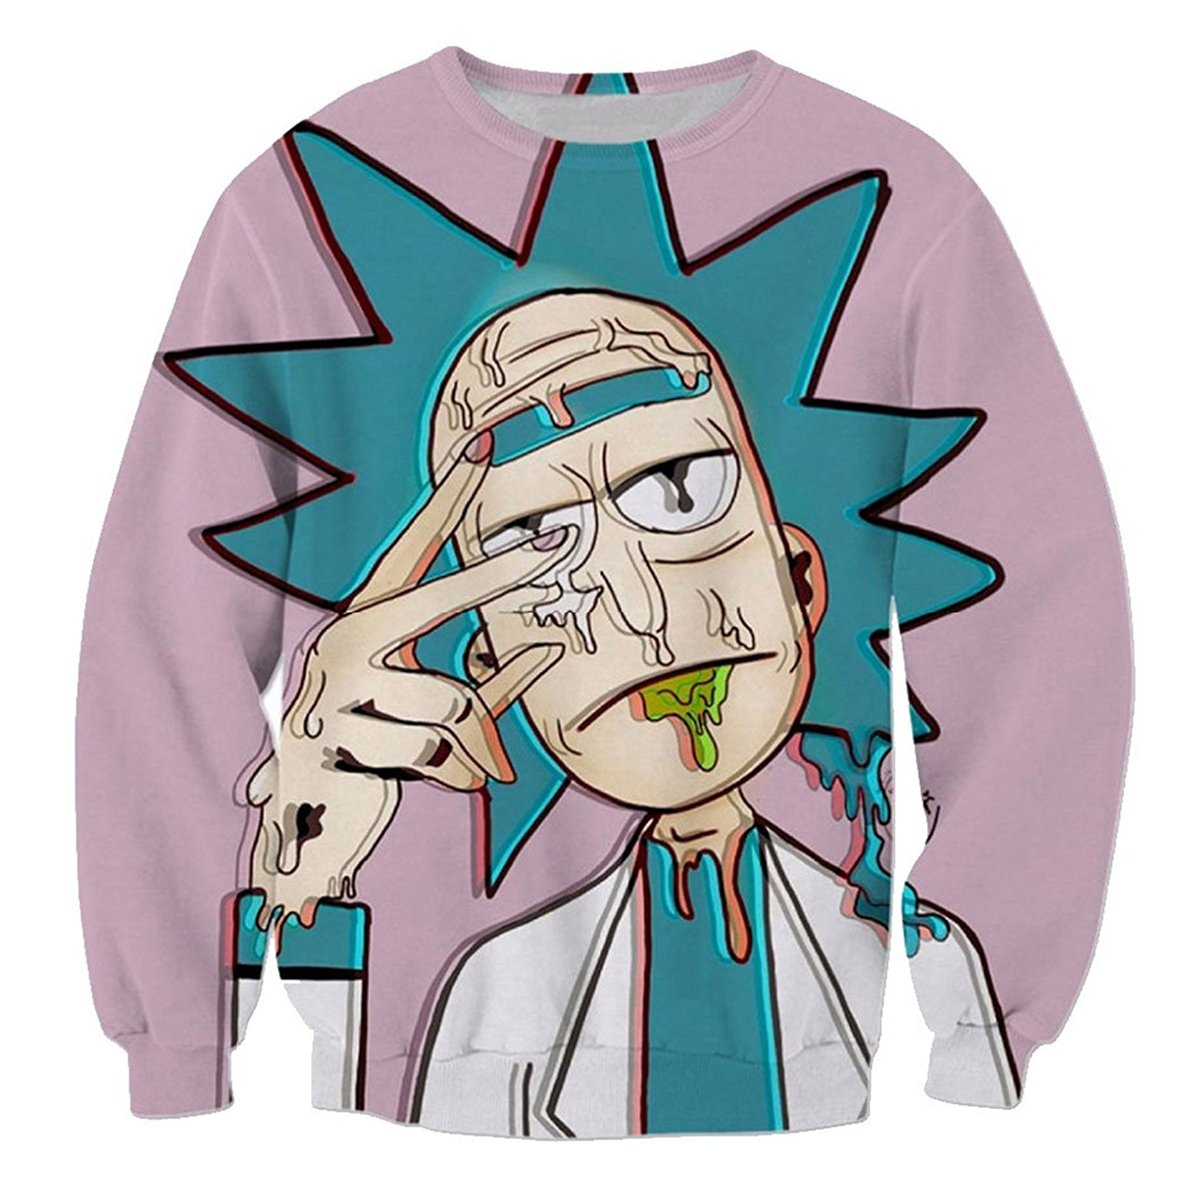 Unisex Rick and Morty 3D Printed Tops Fashion Sweatshirts With Two Side Pocket and Long Sleeves